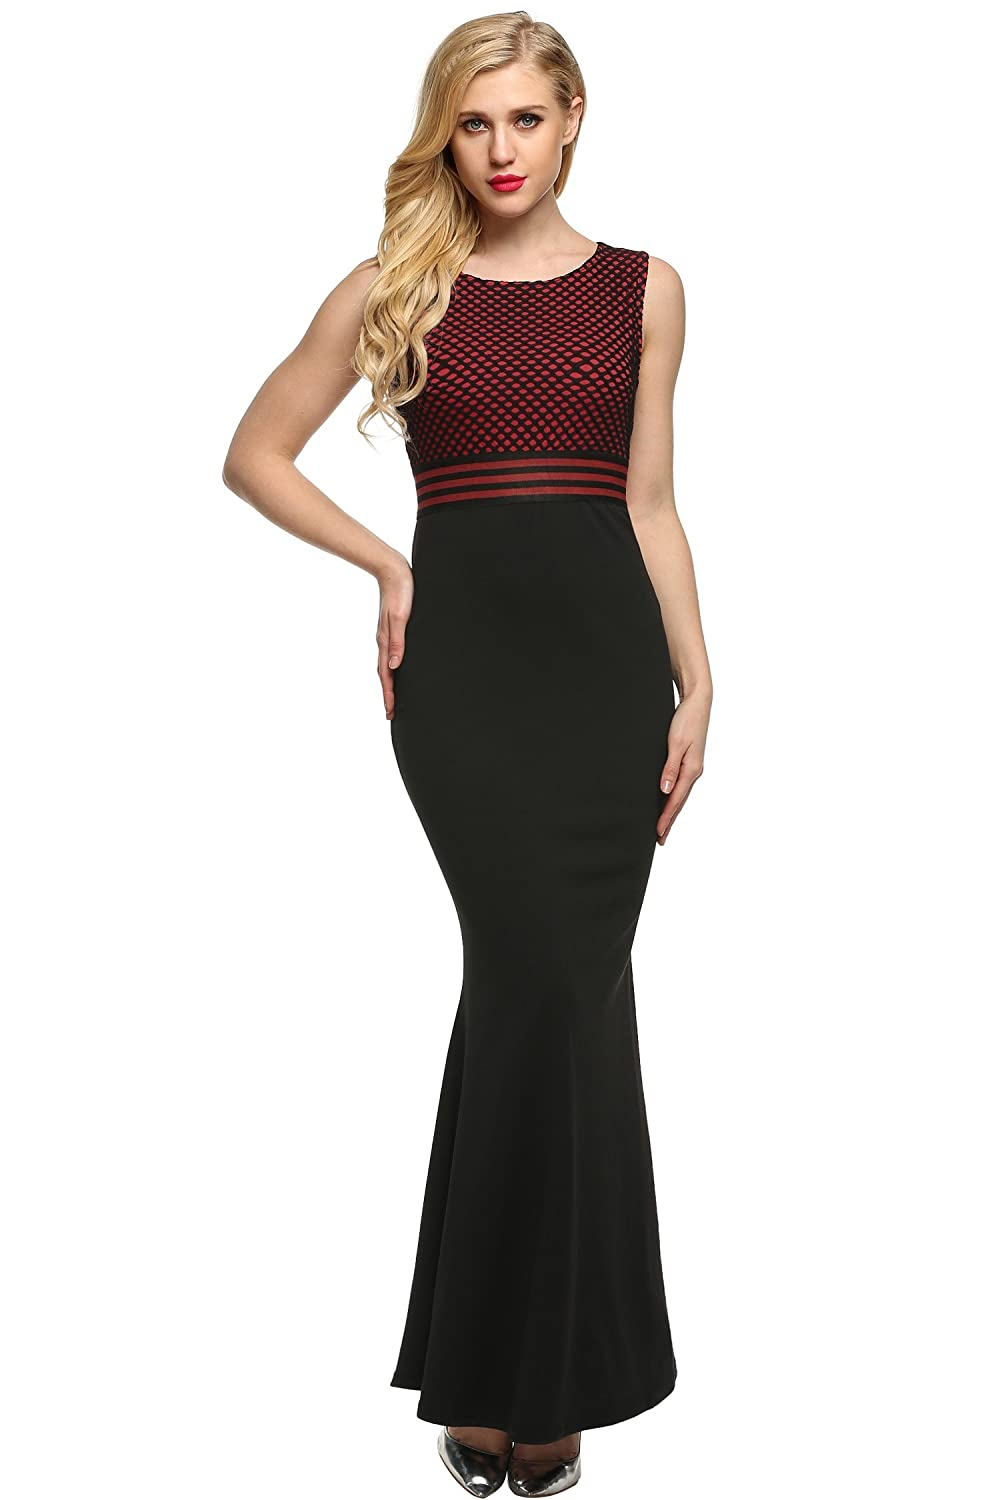 ANGVNS Evening Dress Sleeveless Lace Full Gown Floor-length Round Neck Party Dress